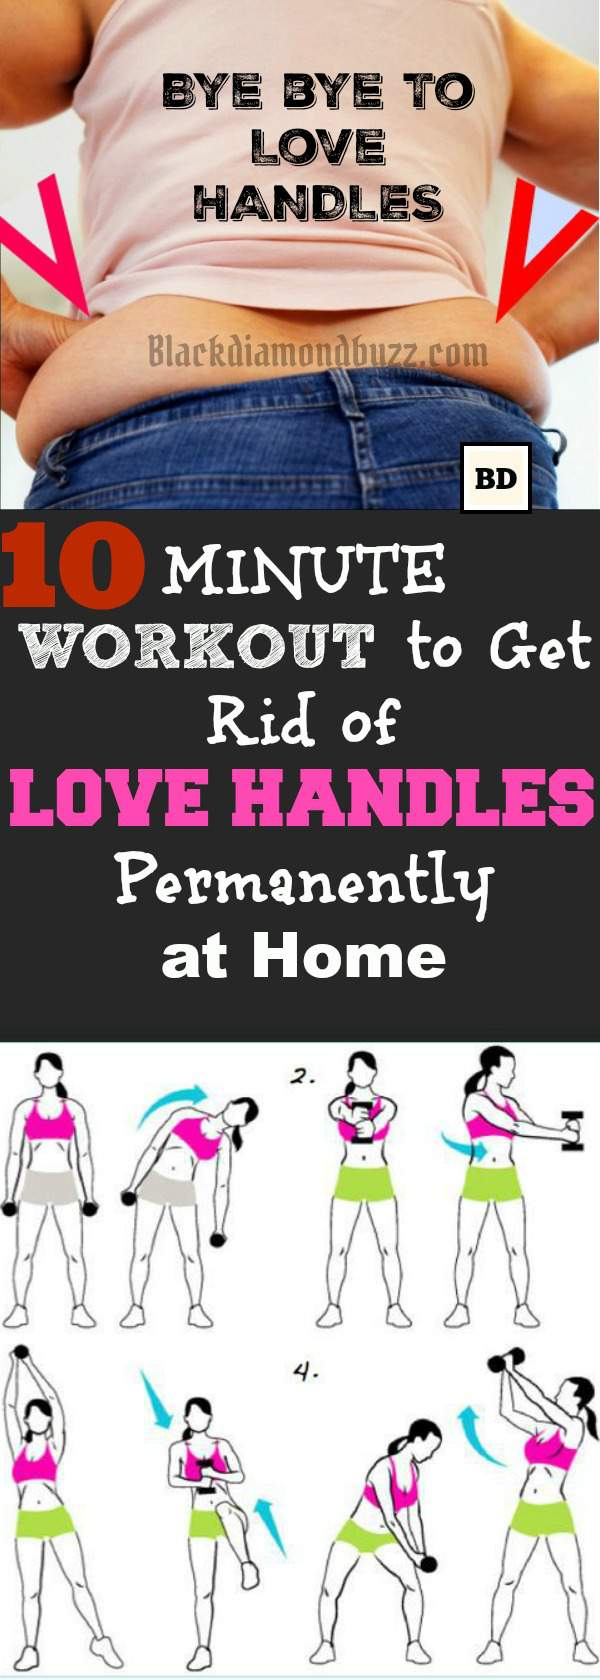 exercises for getting rid of side fat